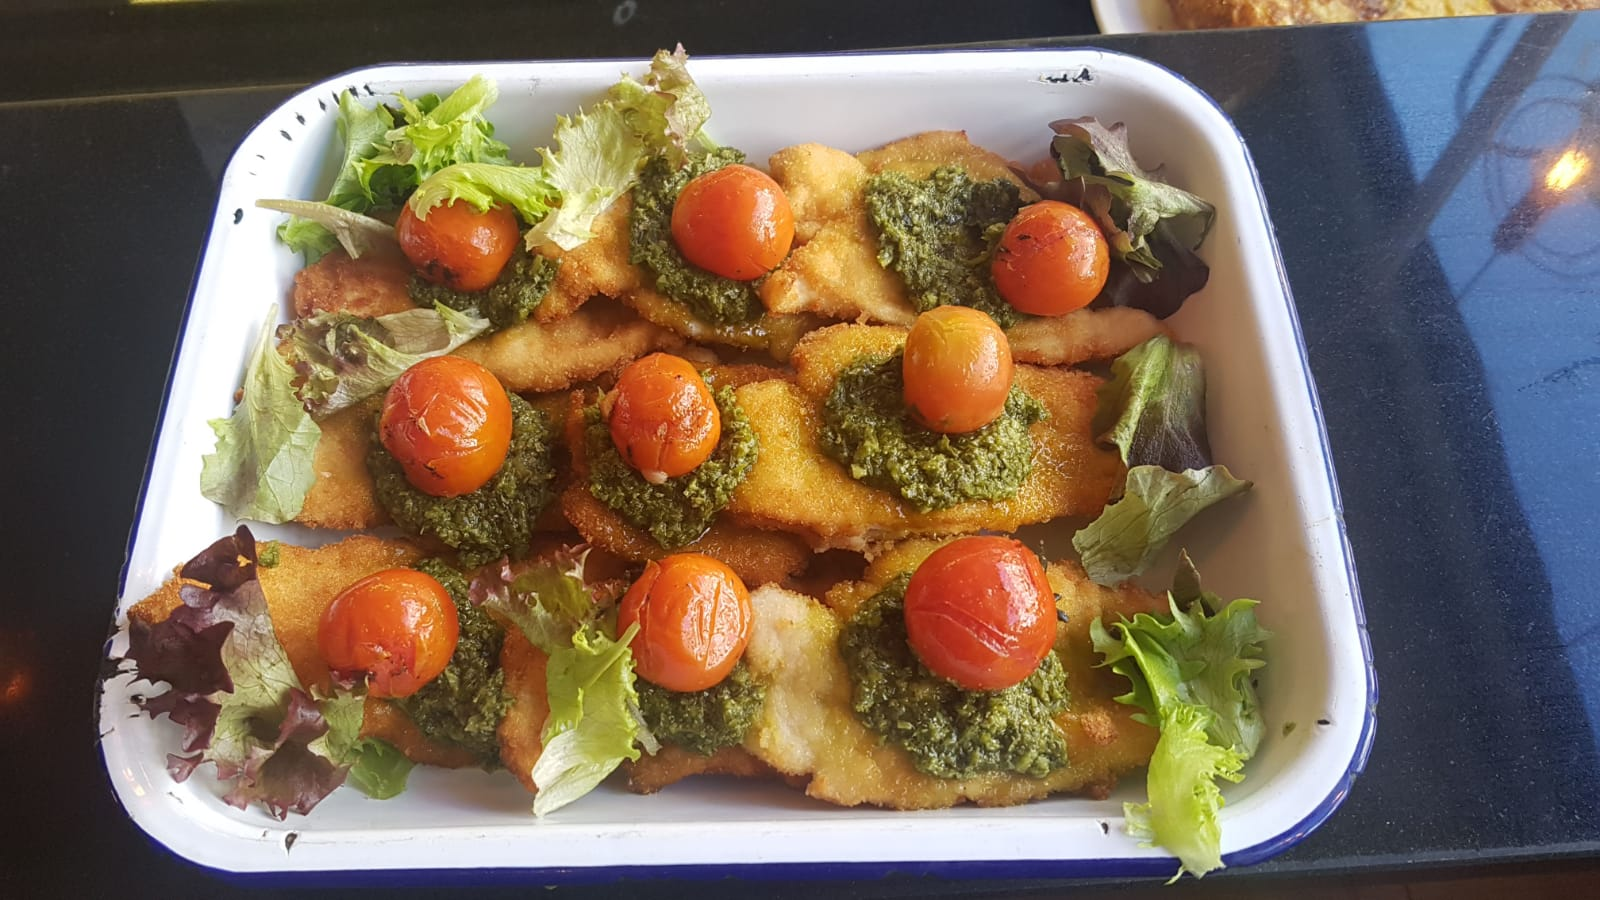 Counter Main Meal is different every day - these are chicken escalopes with pesto and tomato.